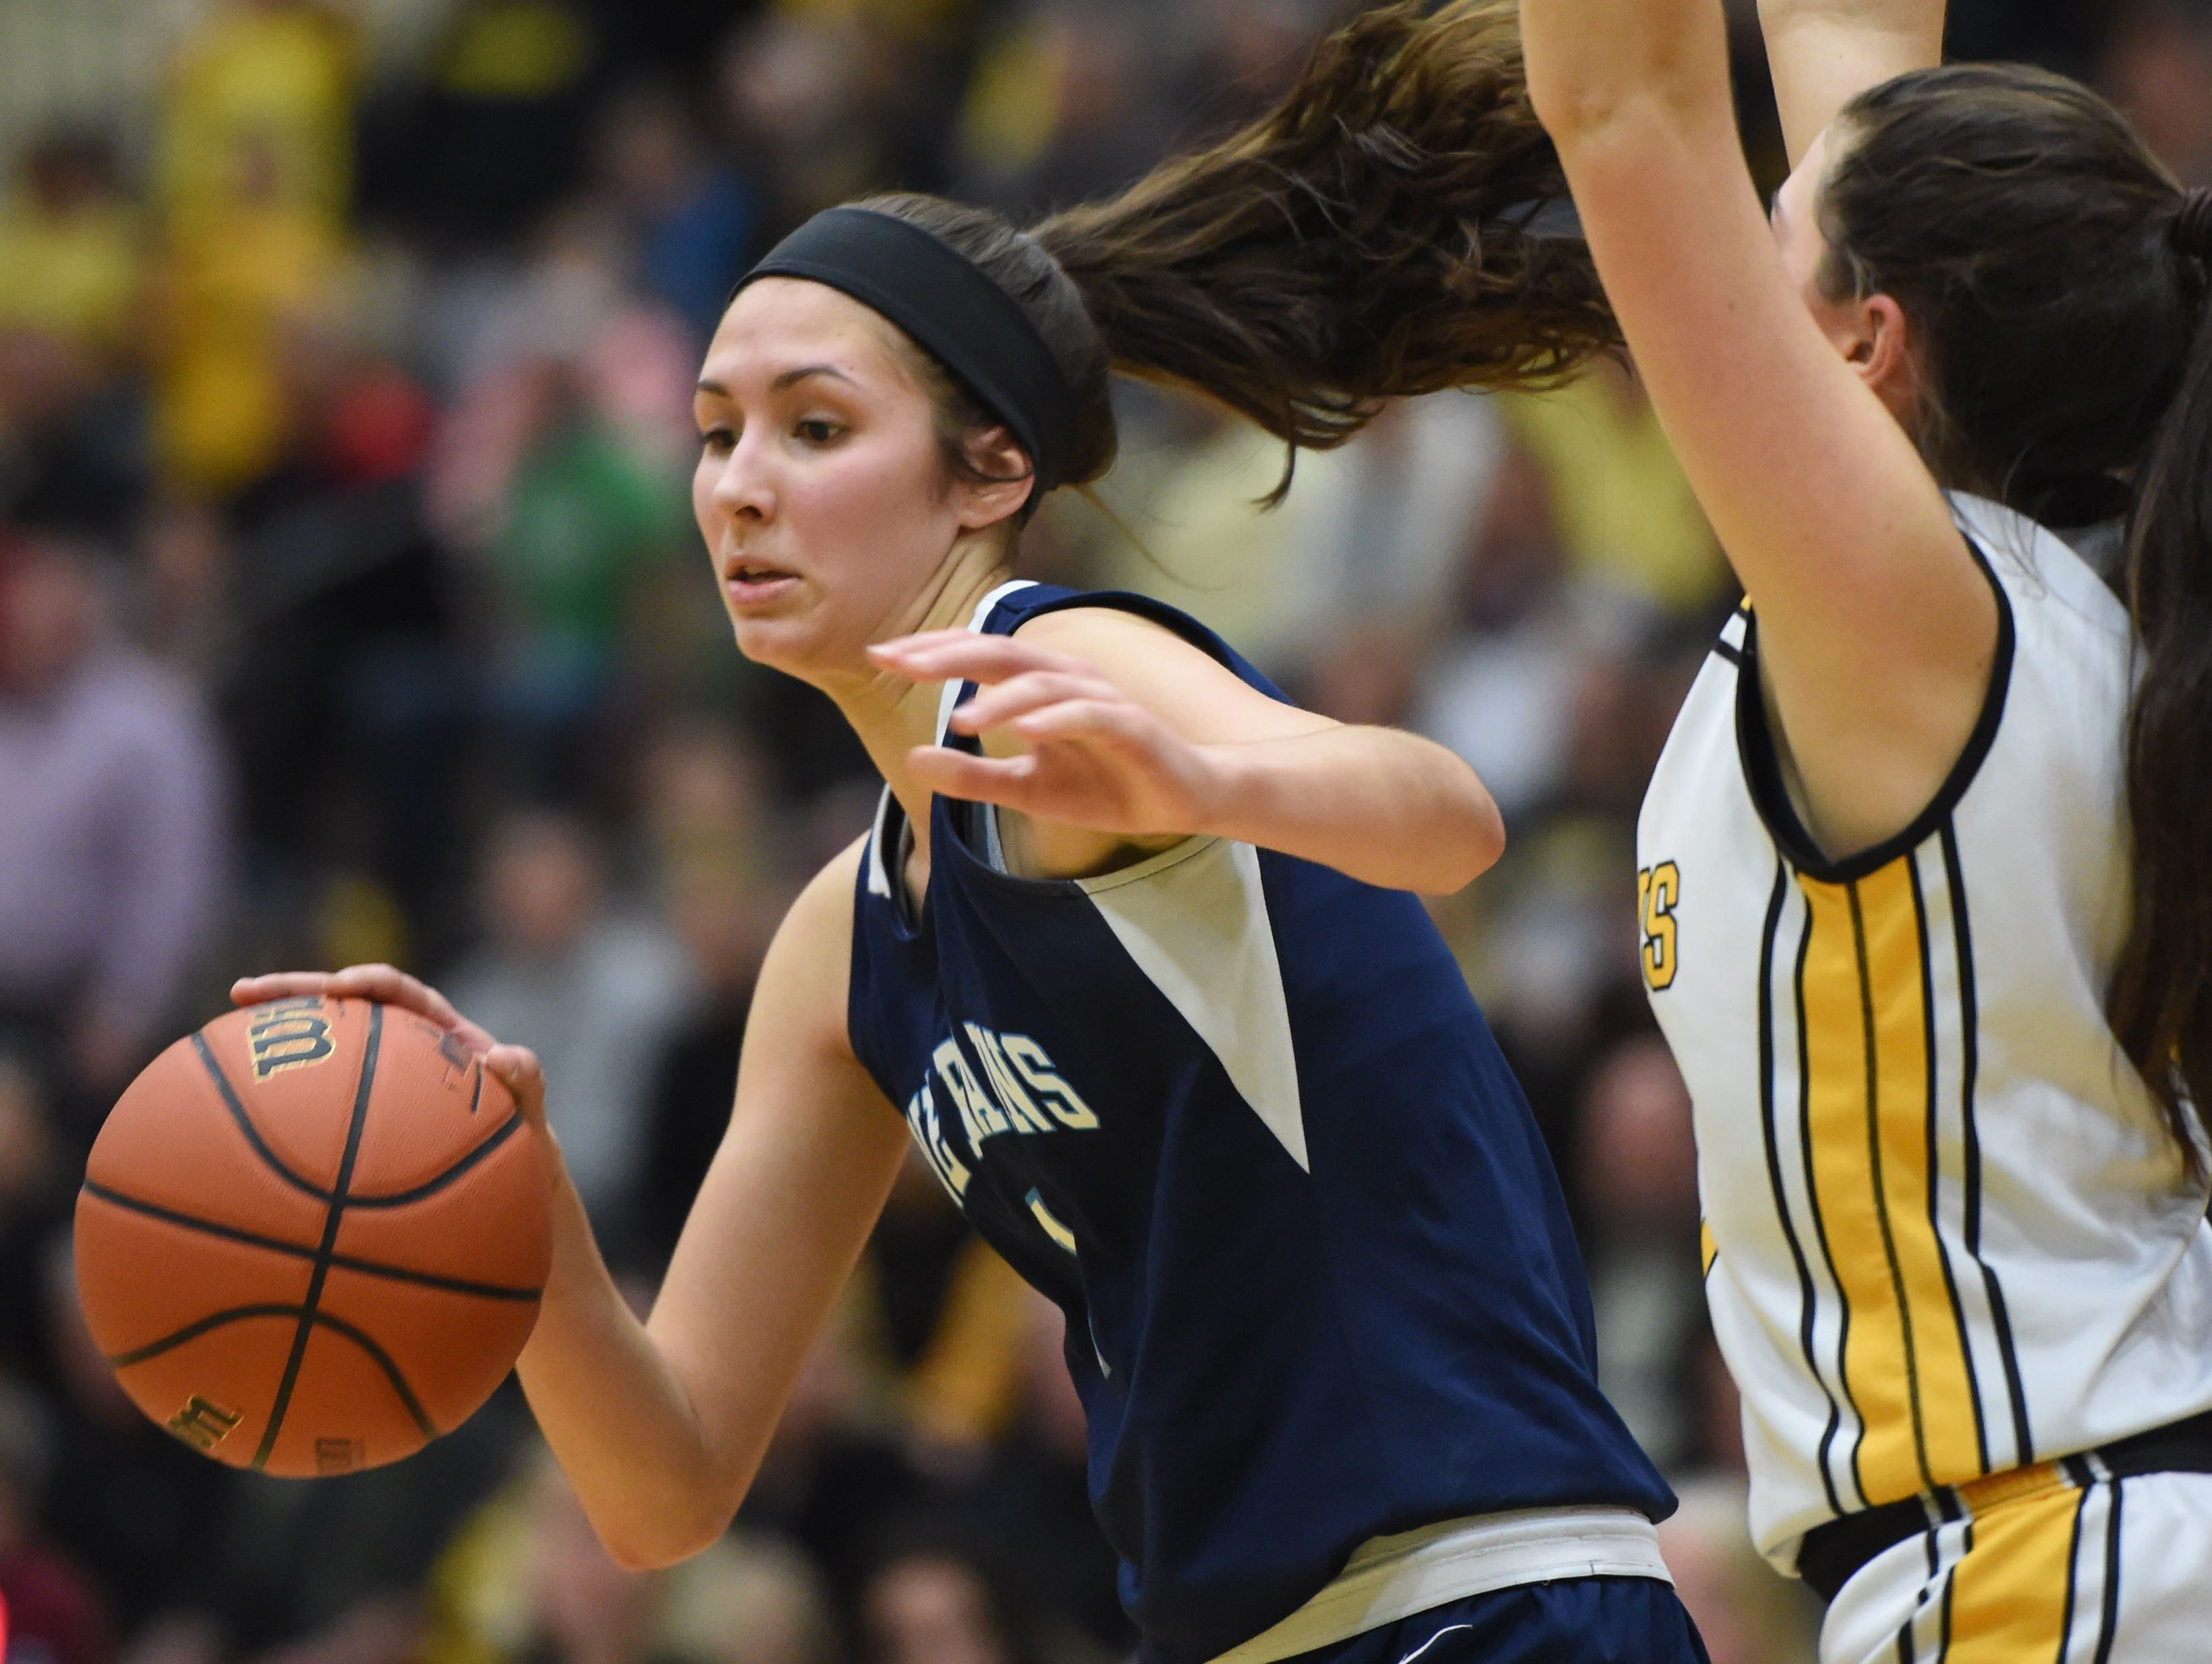 Pine Plains' Ashley Starzyk dribbles around a South Seneca defender during the Class C state final in March.